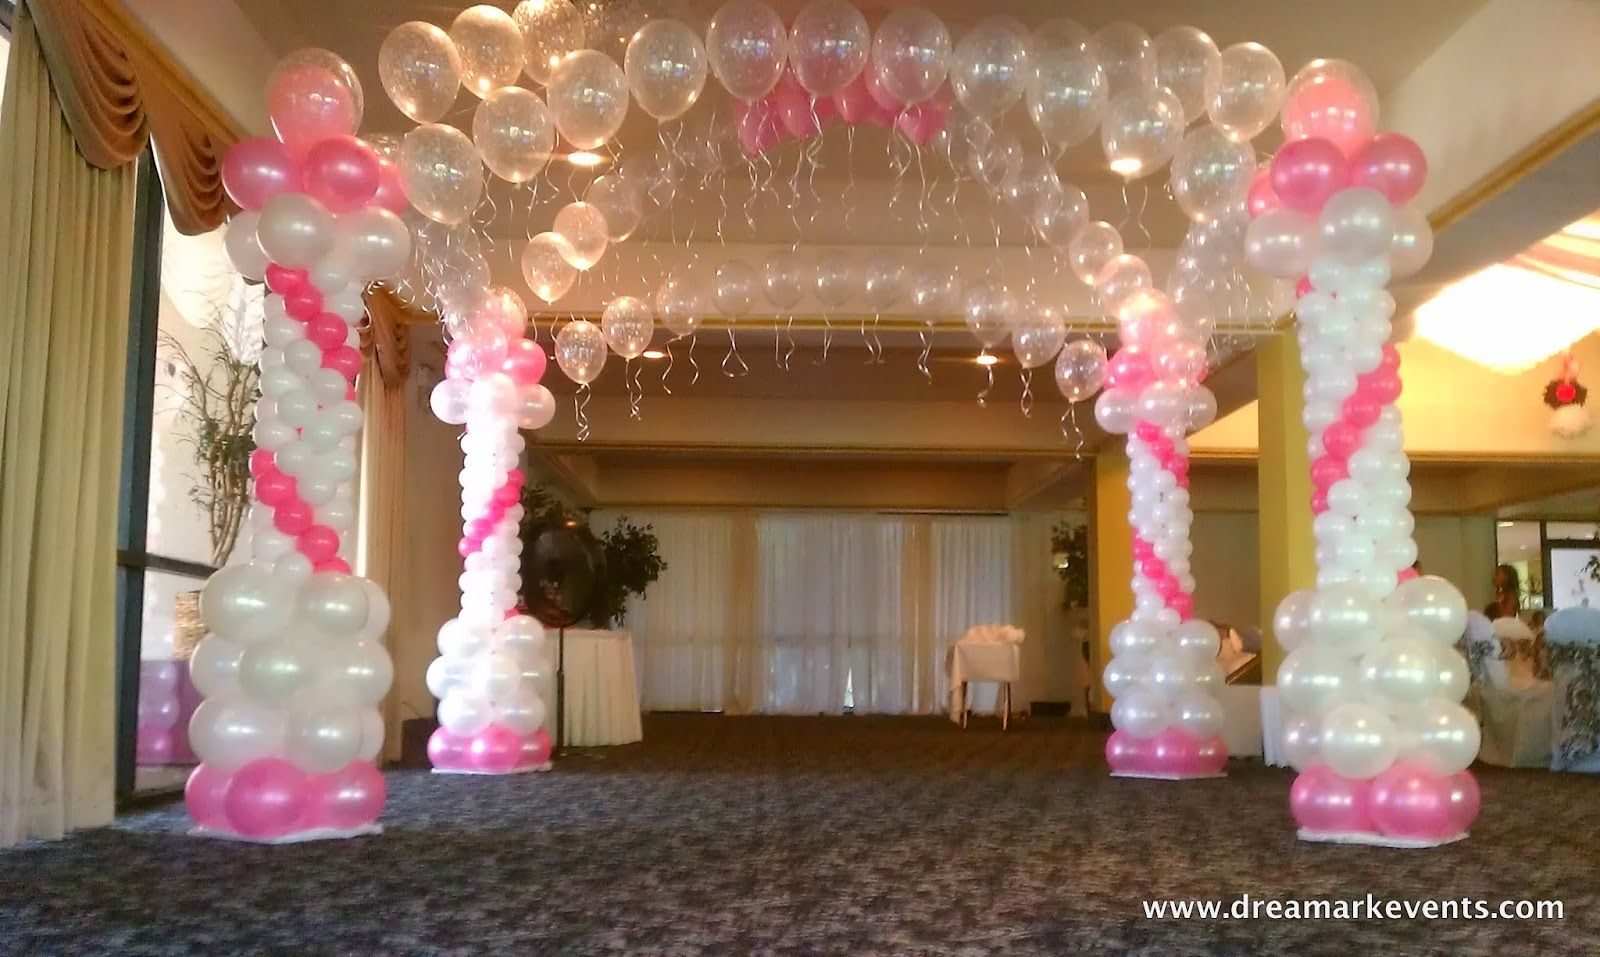 Baby Shower Balloon Decor | DreamARK Events Blog: Baby Shower Decor. Balloon  Arch Canopy